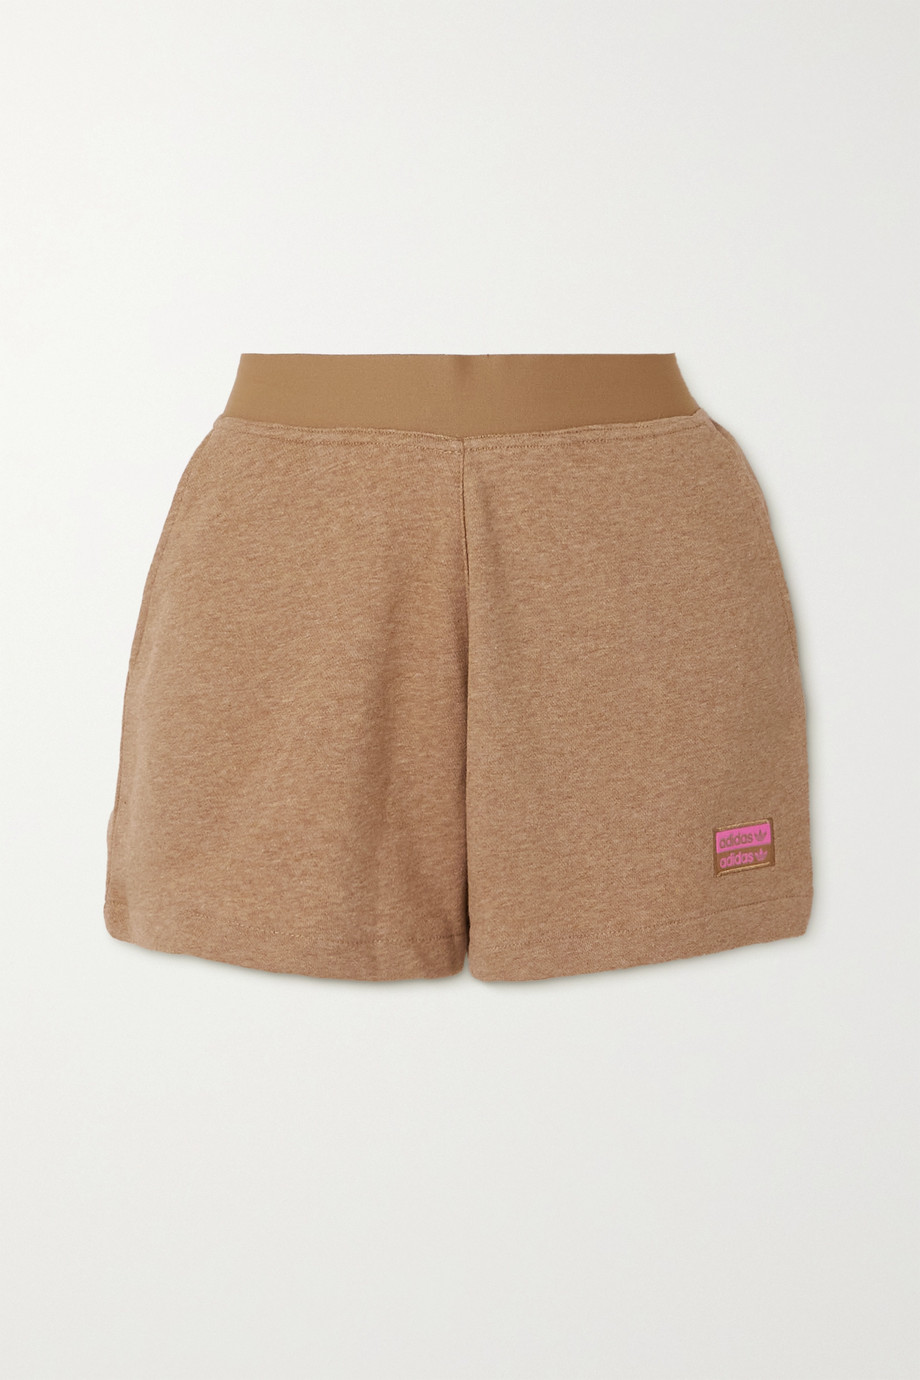 adidas Originals + Girls Are Awesome R.Y.V cotton-blend jersey shorts